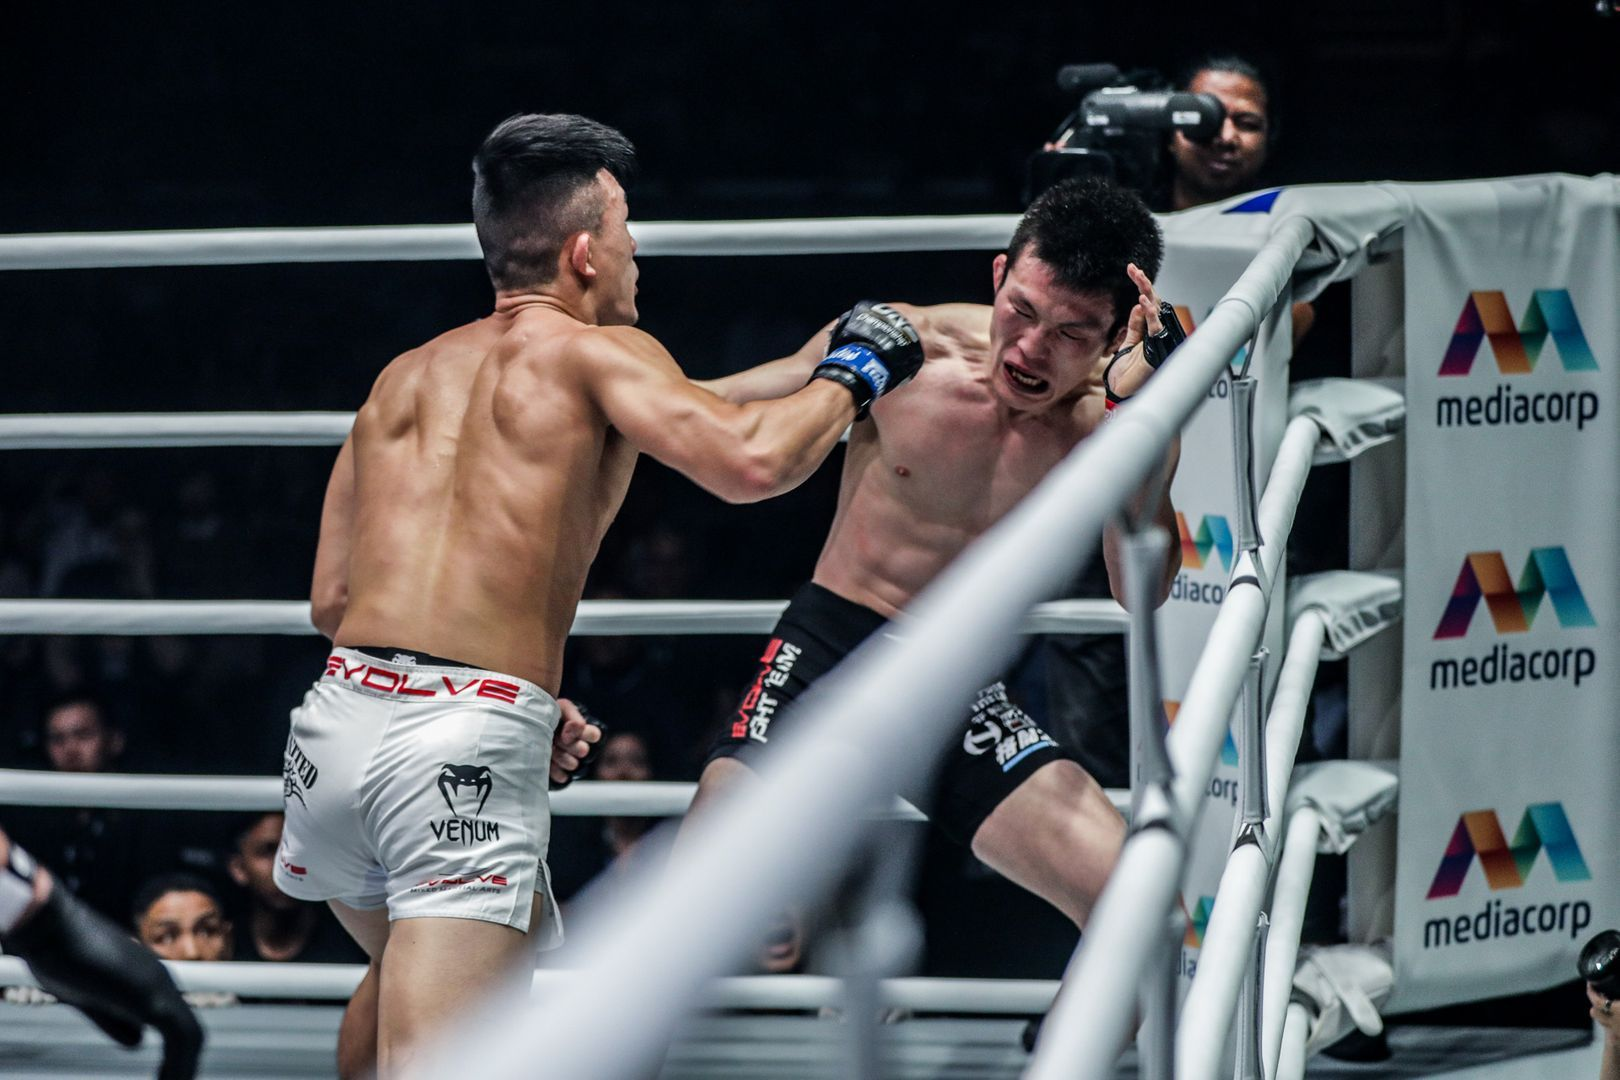 Christian Lee knocks out Shinya Aoki to become the ONE Lightweight World Champion